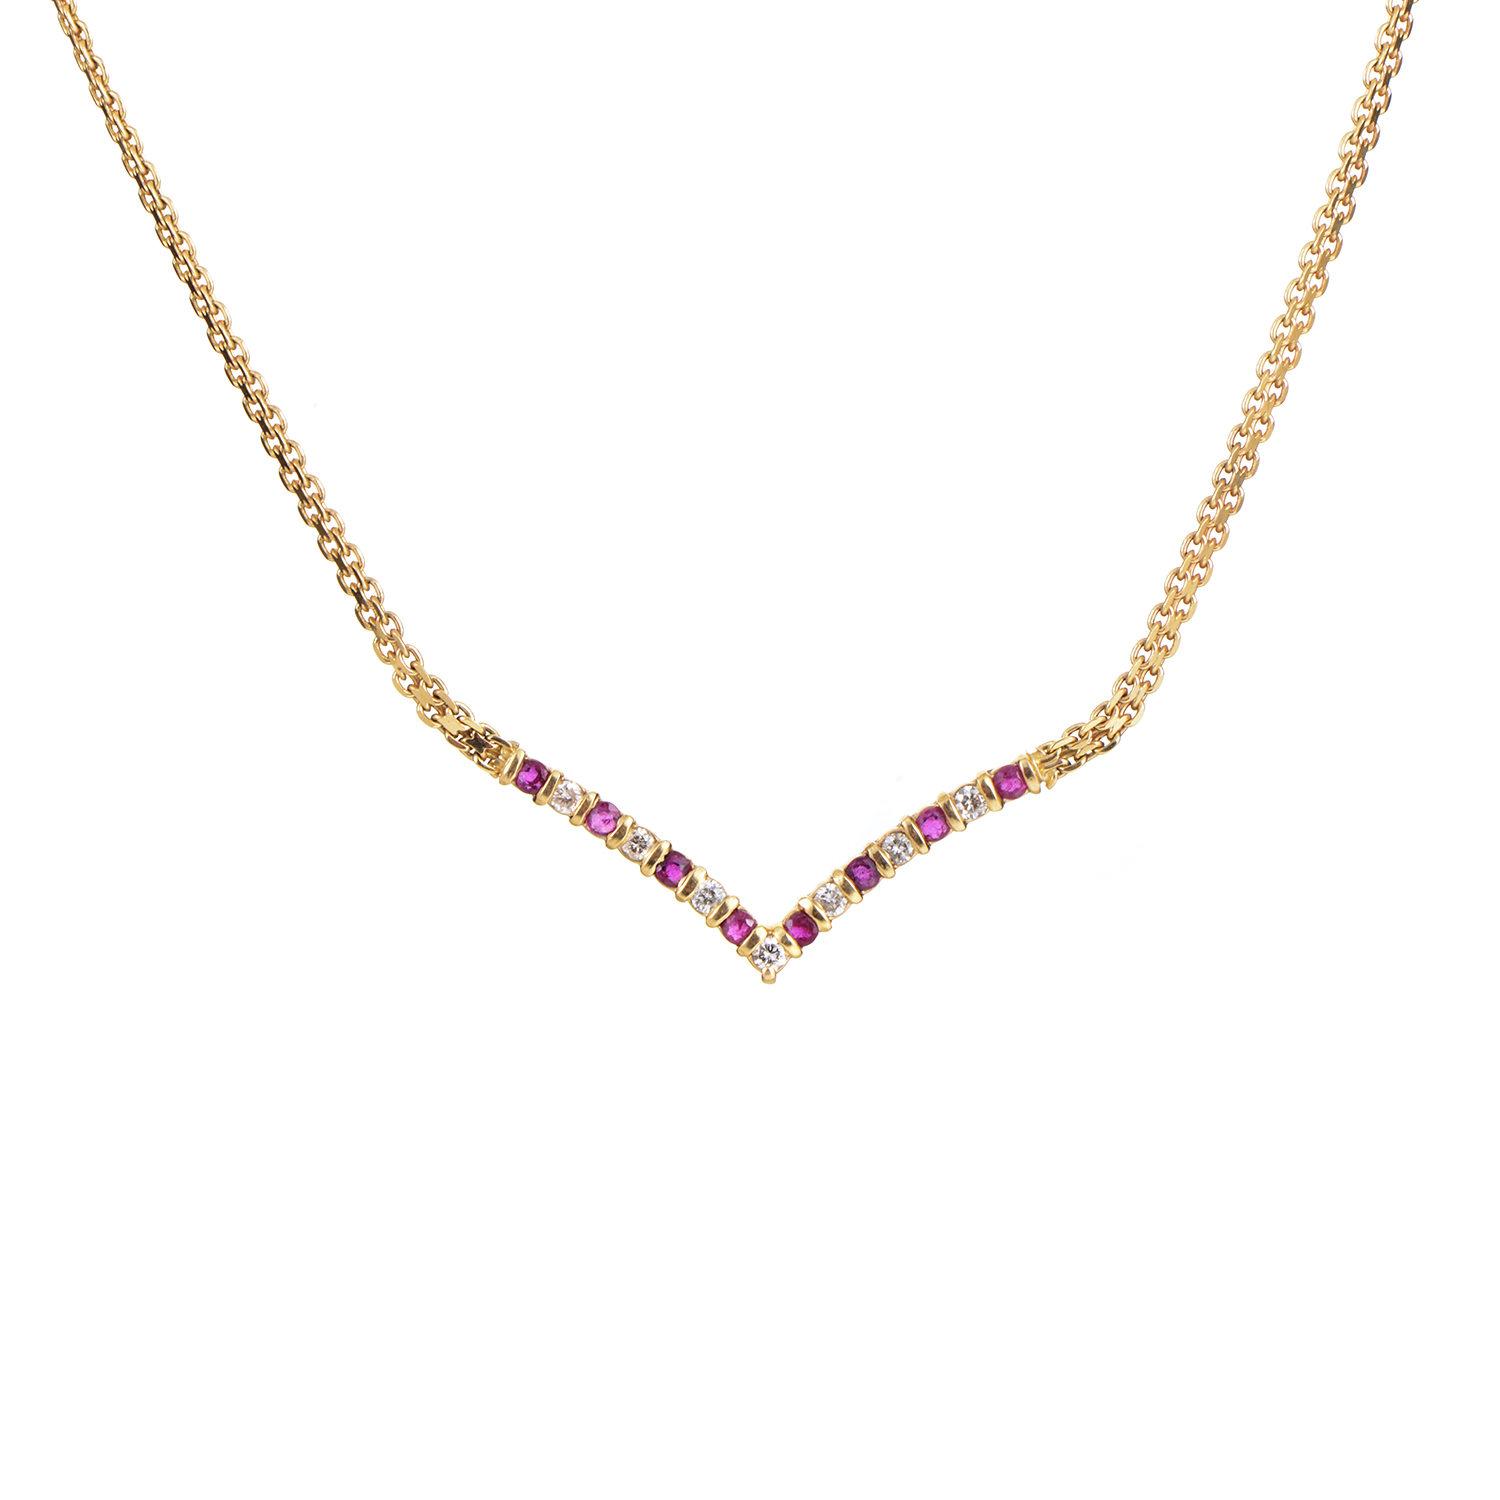 14K Yellow Gold Diamond & Ruby